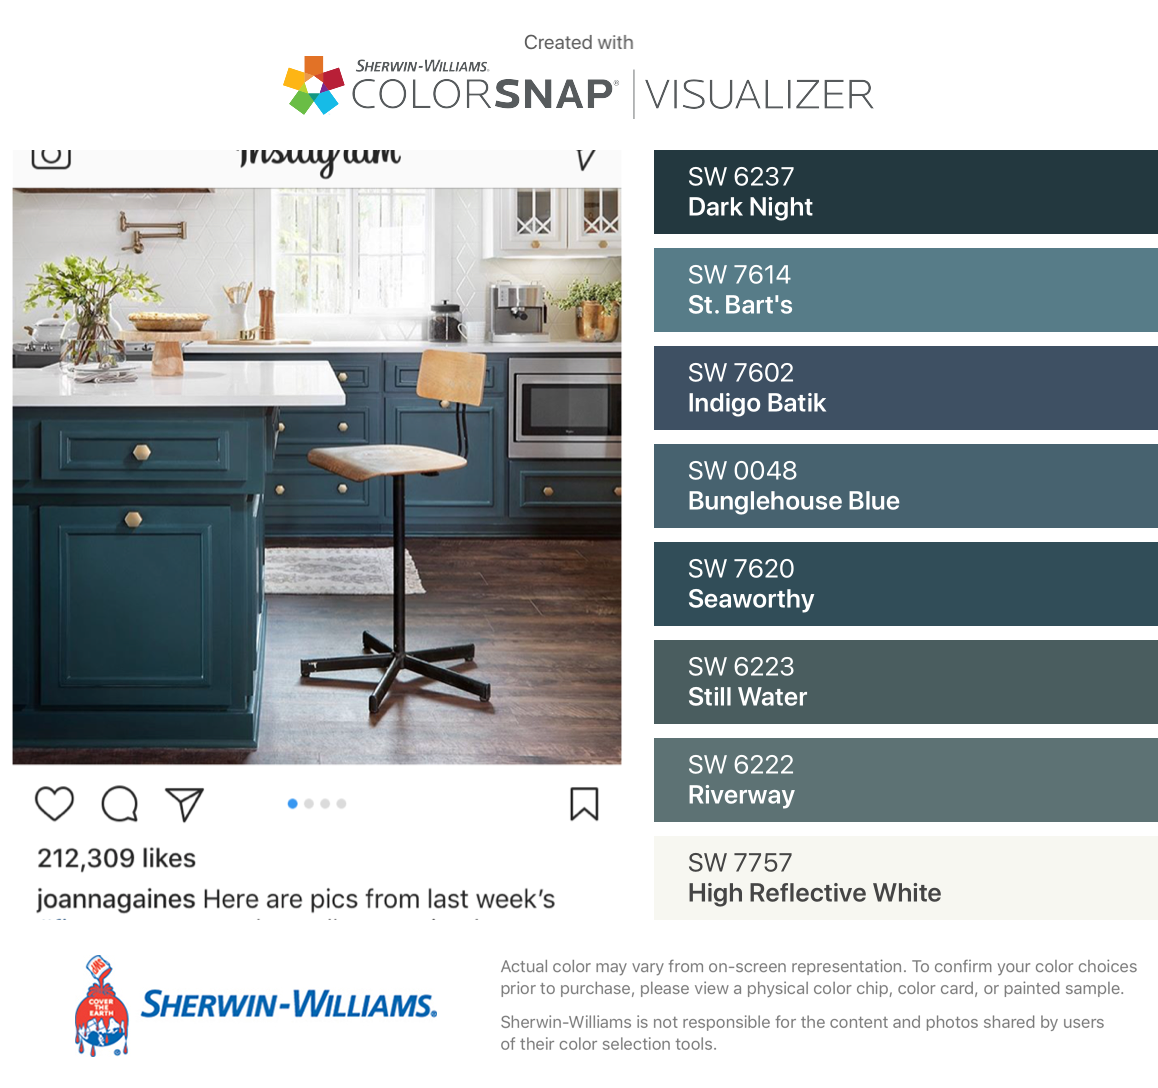 I Found These Colors With Colorsnap Visualizer For Iphone By Sherwin Williams Dark Night Sw 6237 St B Accent Wall Paint Colors Blue Cabinets House Colors [ 1088 x 1158 Pixel ]